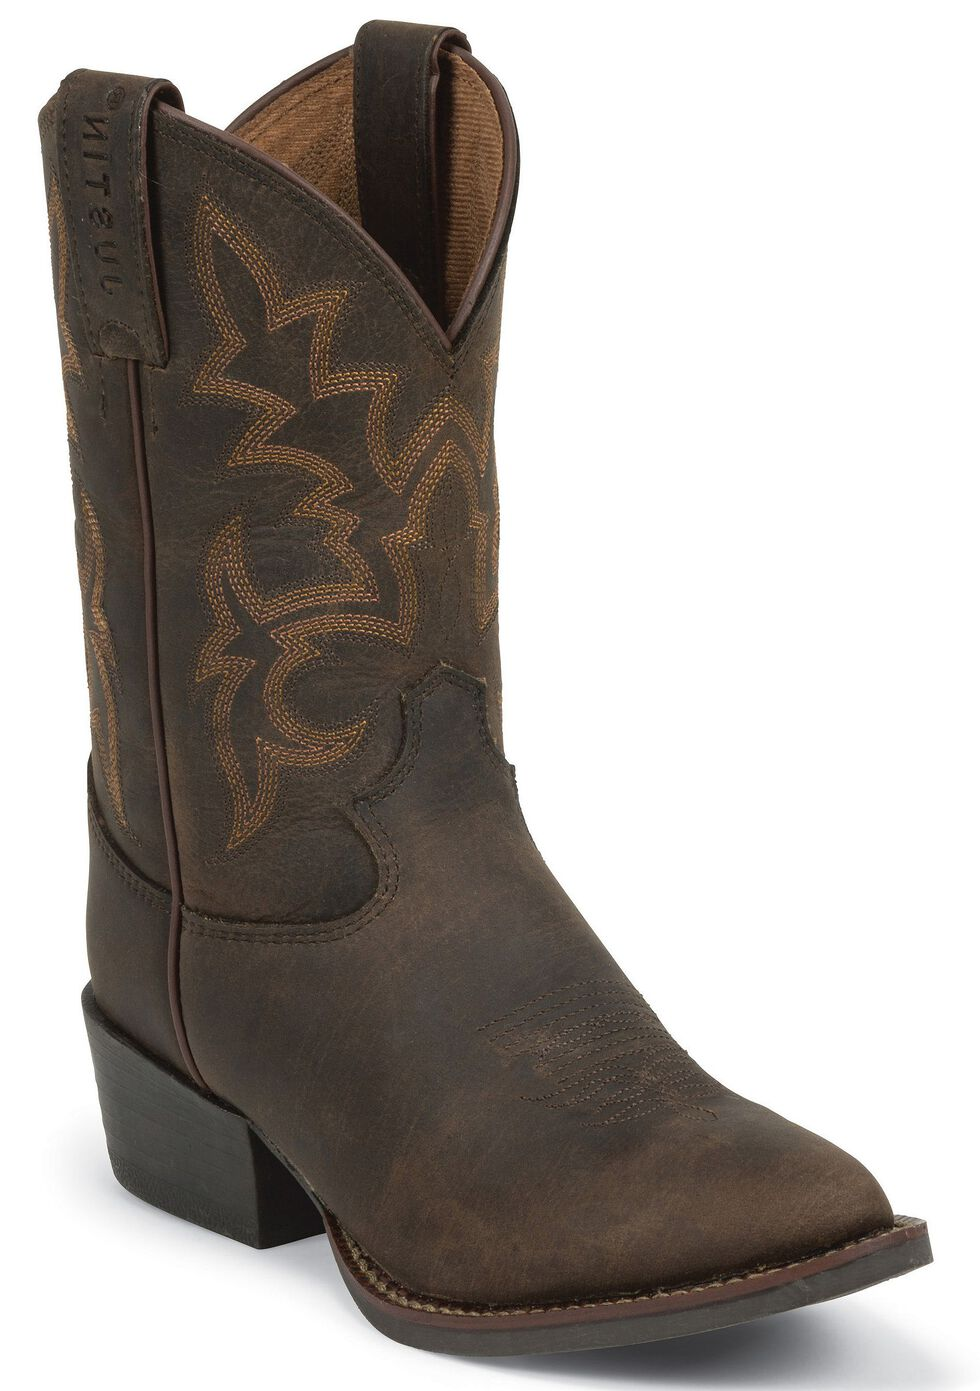 Justin Youth Boys' Cowboy Boots - Round Toe, , hi-res